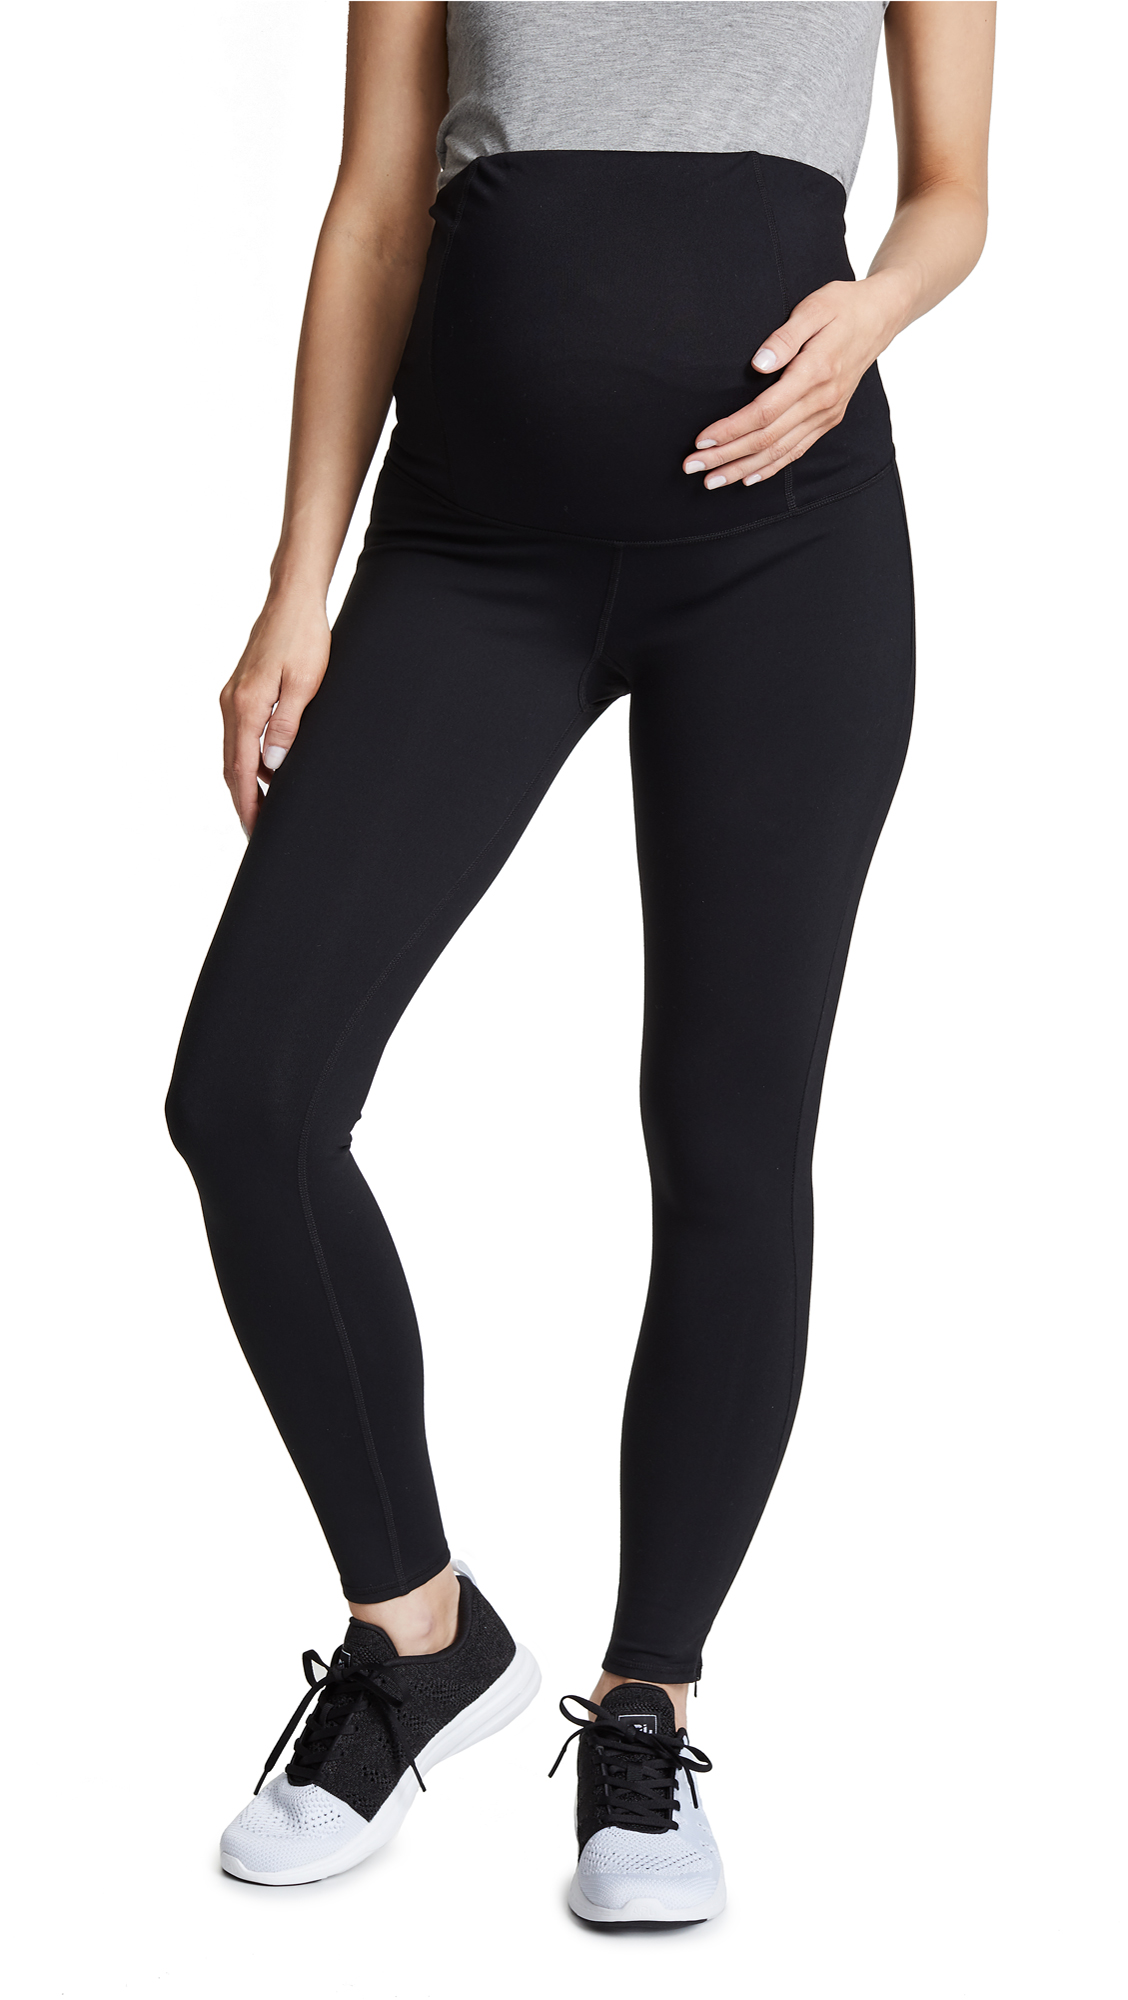 Ingrid & Isabel Active Maternity Leggings